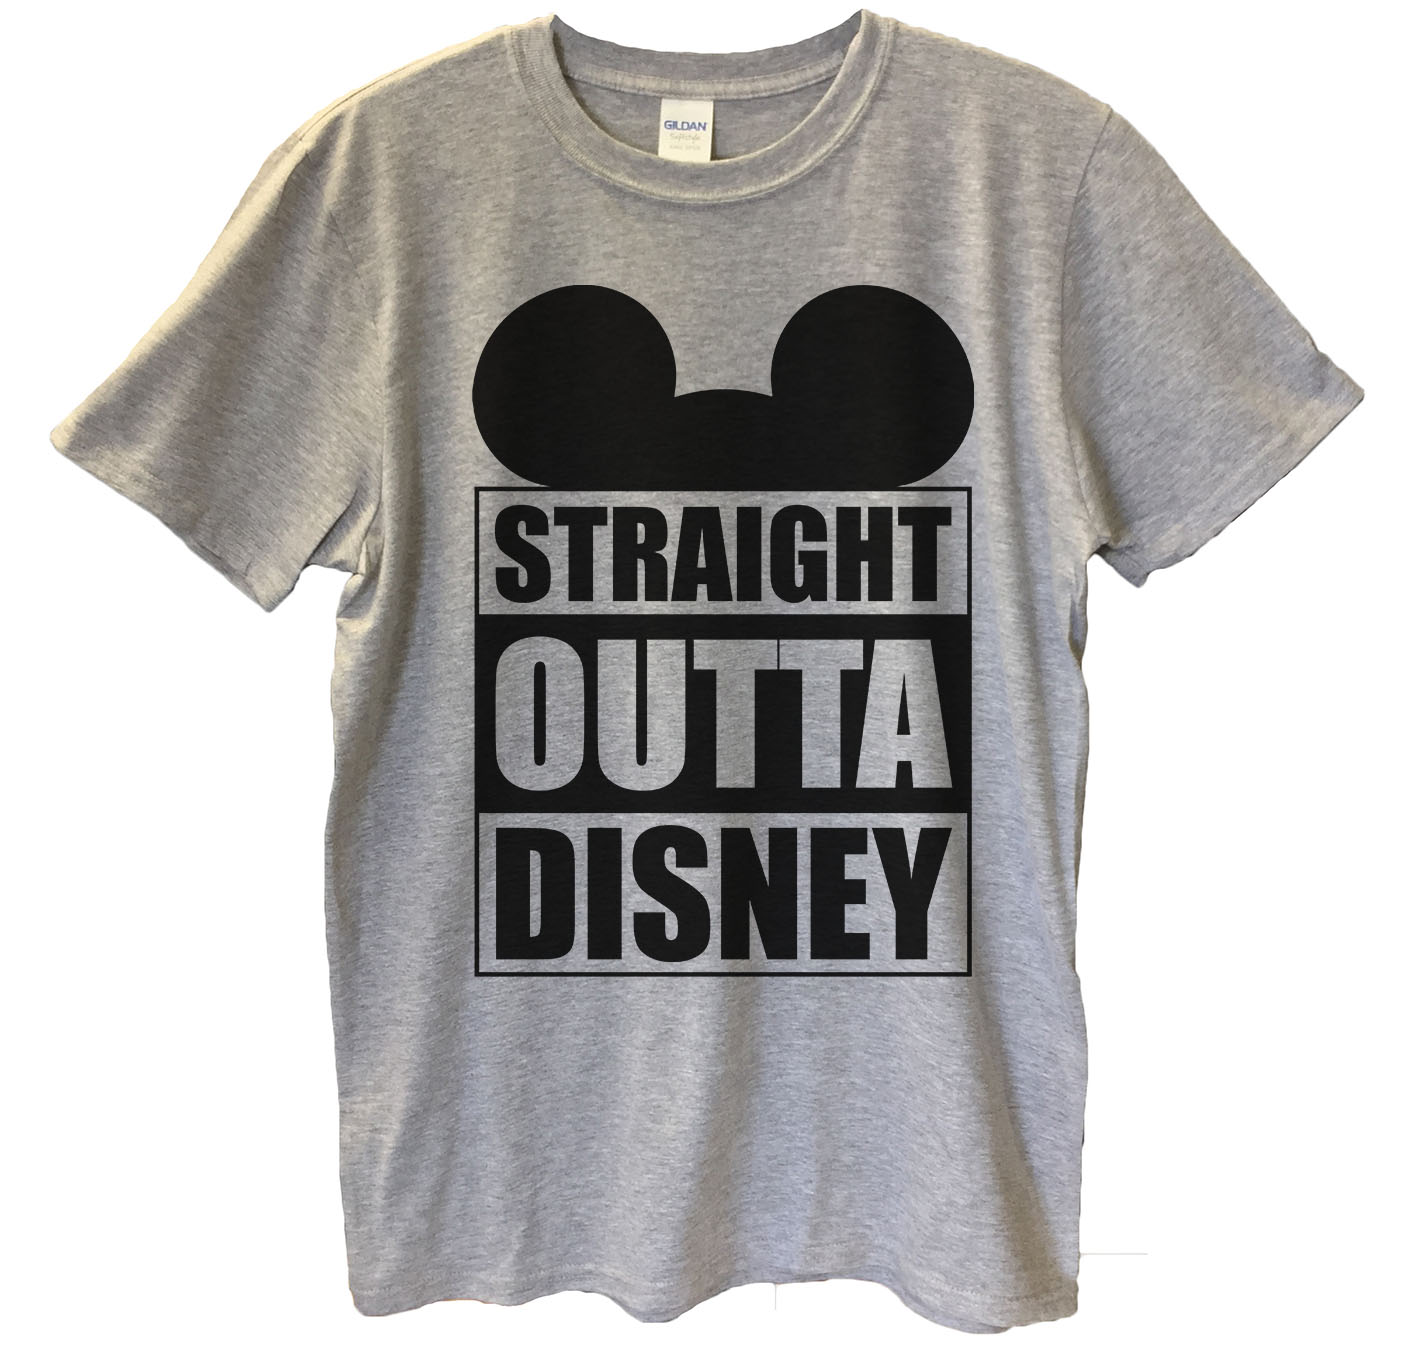 """Funny Mens Mickey Mouse T-shirt """"Straight Outta Disney"""" Funny Disney T Shirt Gift For Dad Small, North Carolina Blue"""